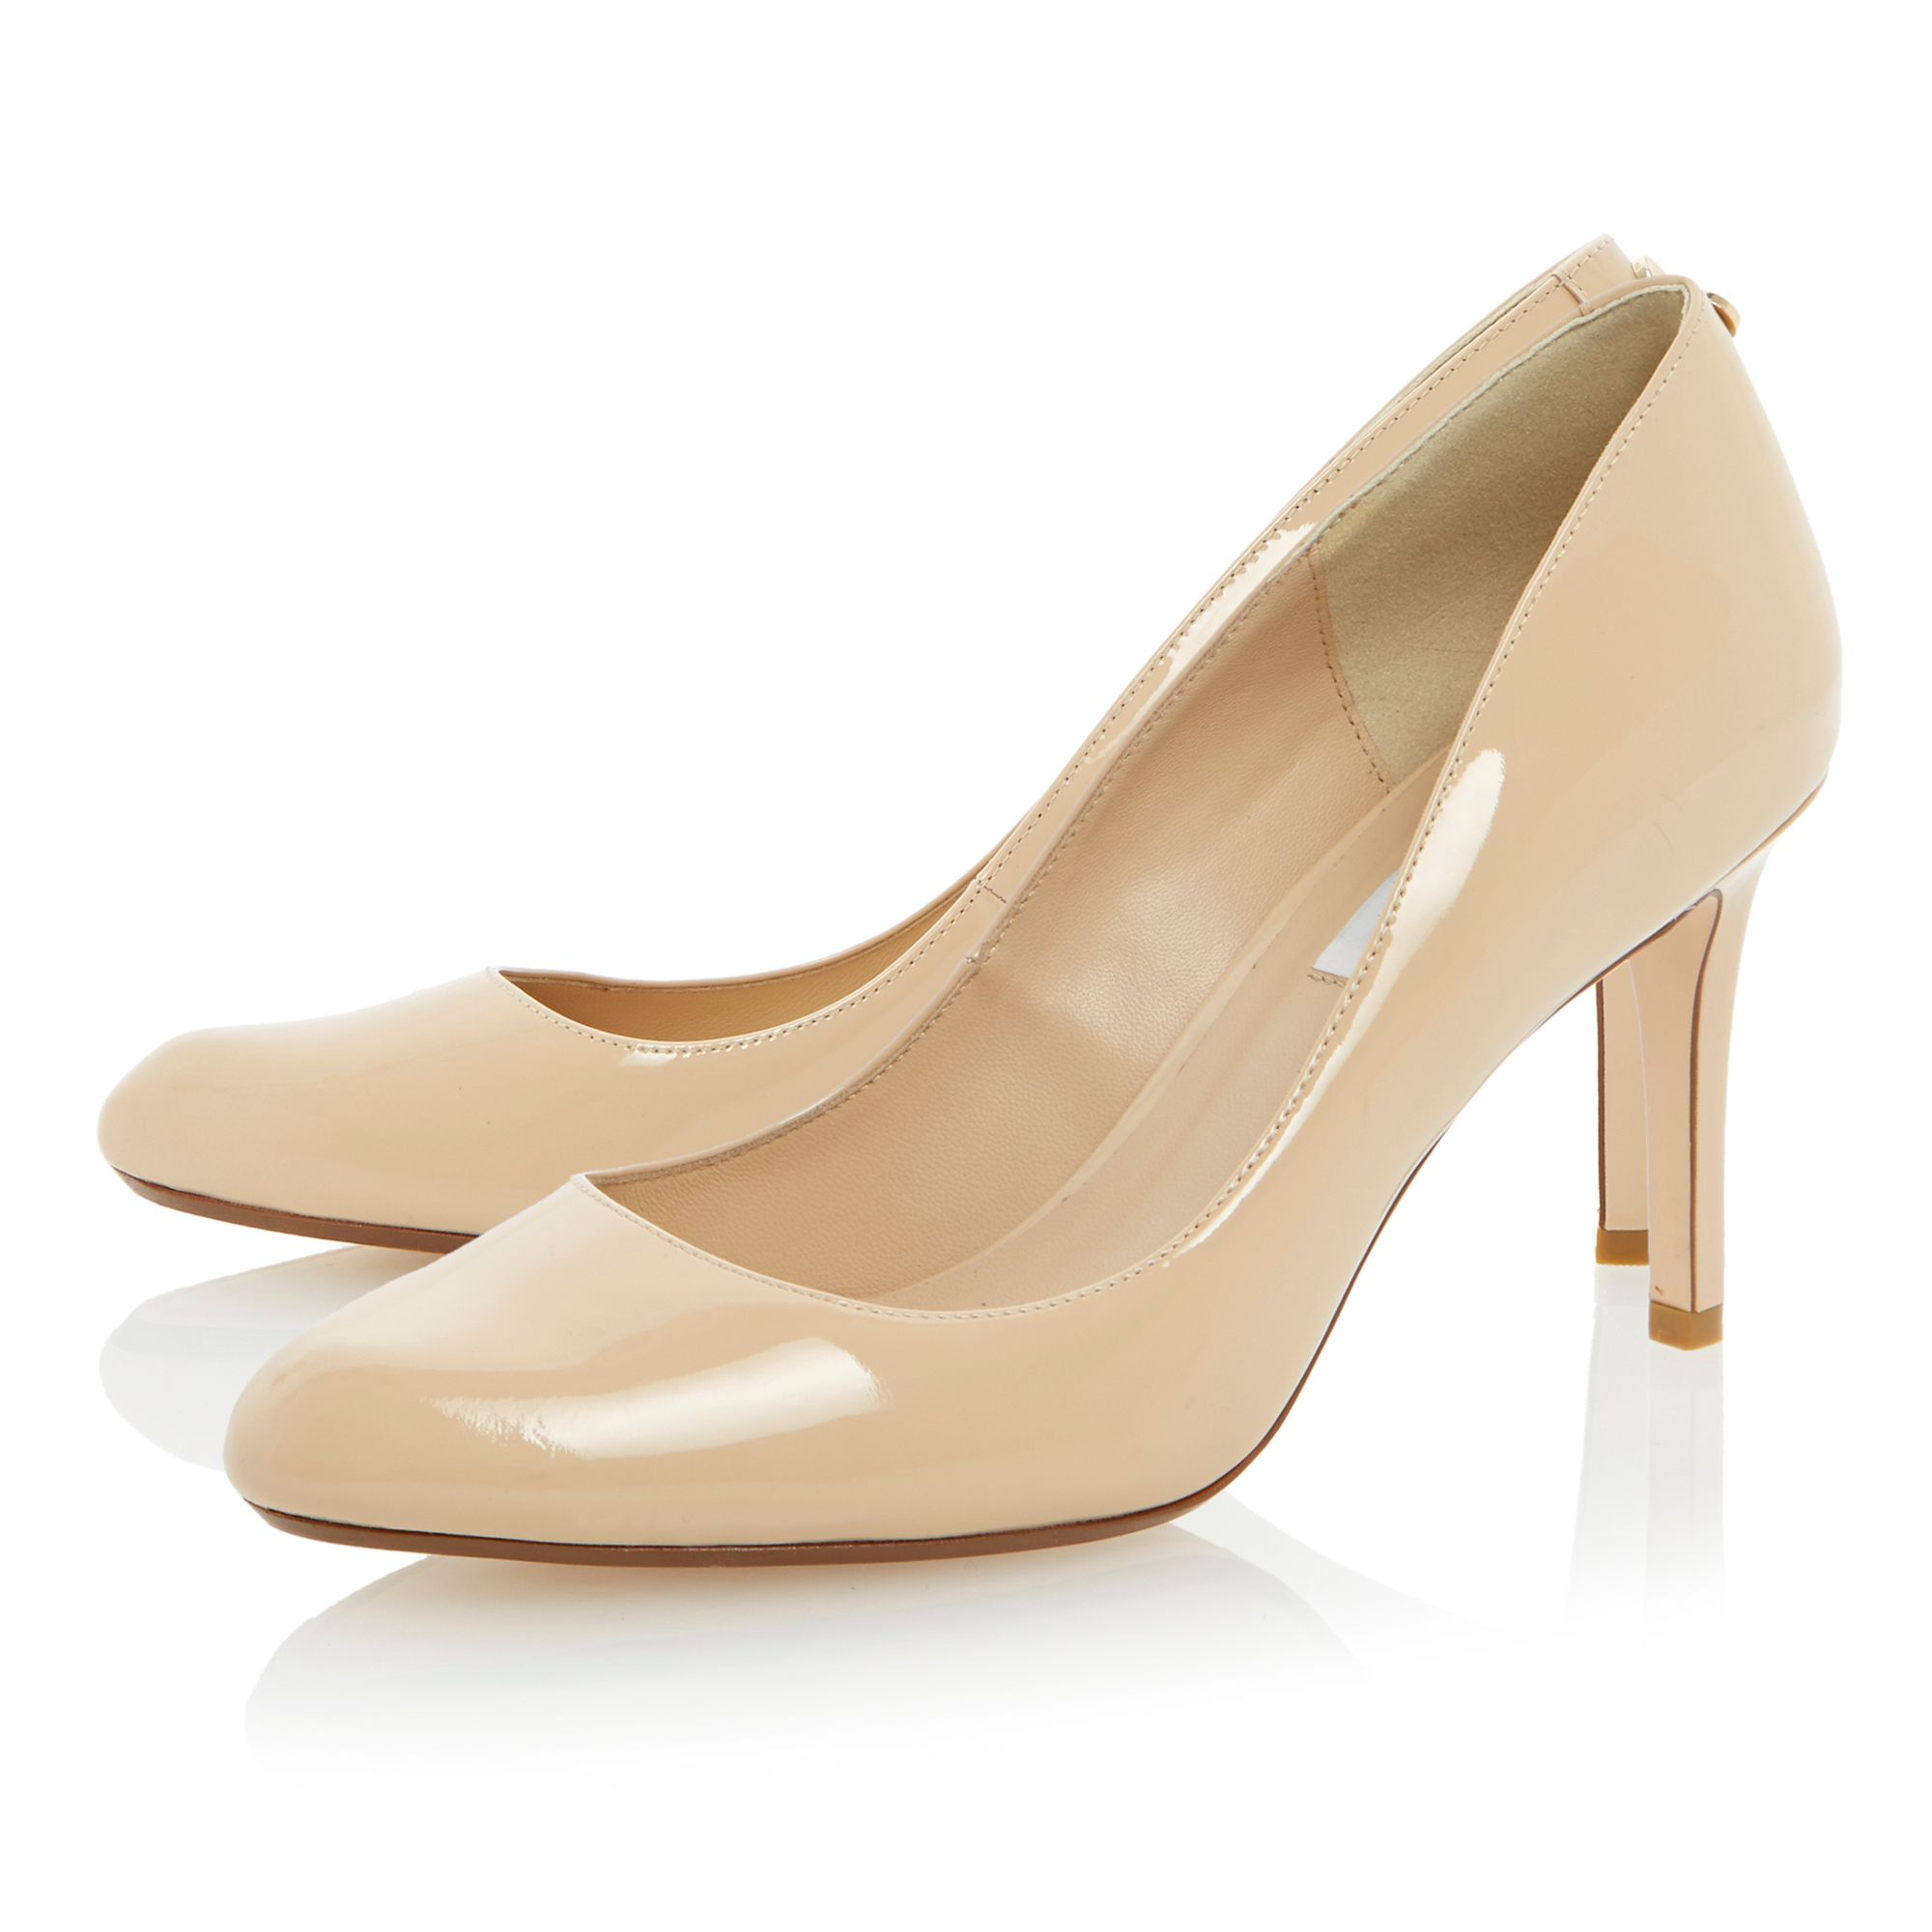 Allie patent stiletto almond toe court shoes